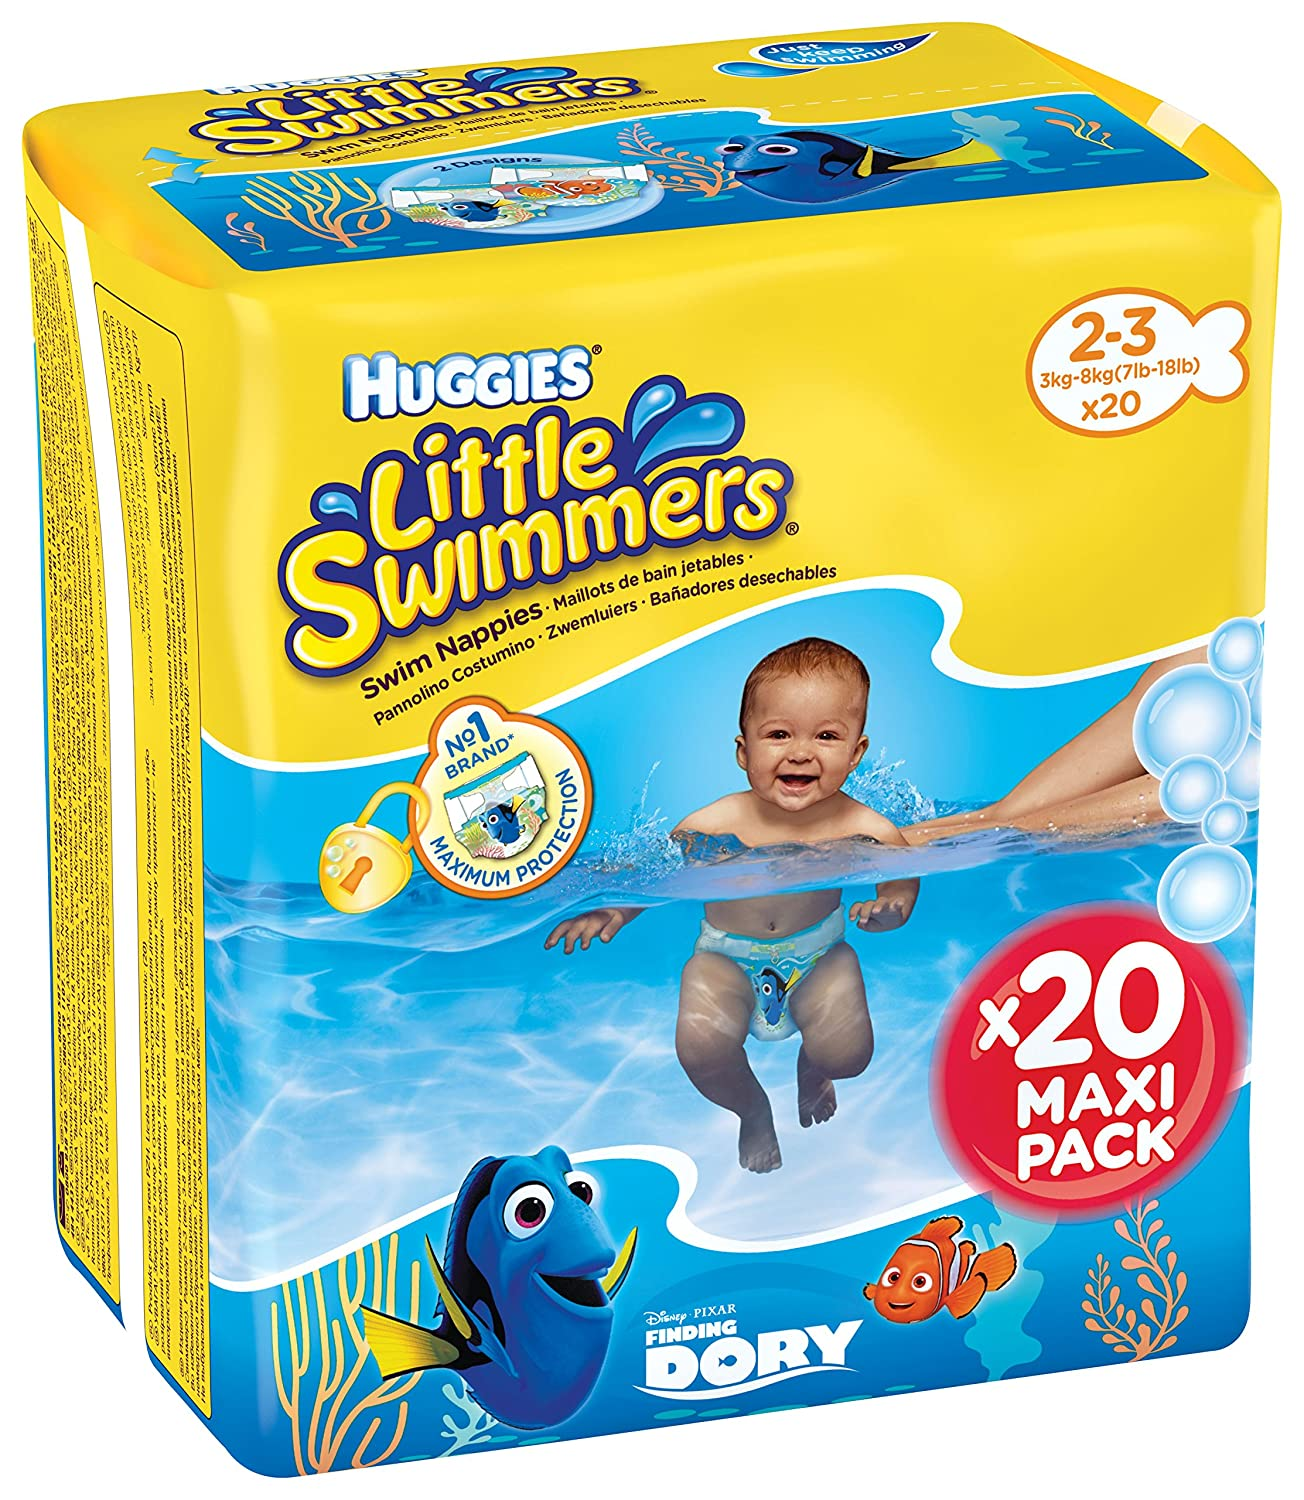 Huggies Little Swimmers S, taille 2–3(3à8kg), 20couches Kimberly-Clark 5029053537818